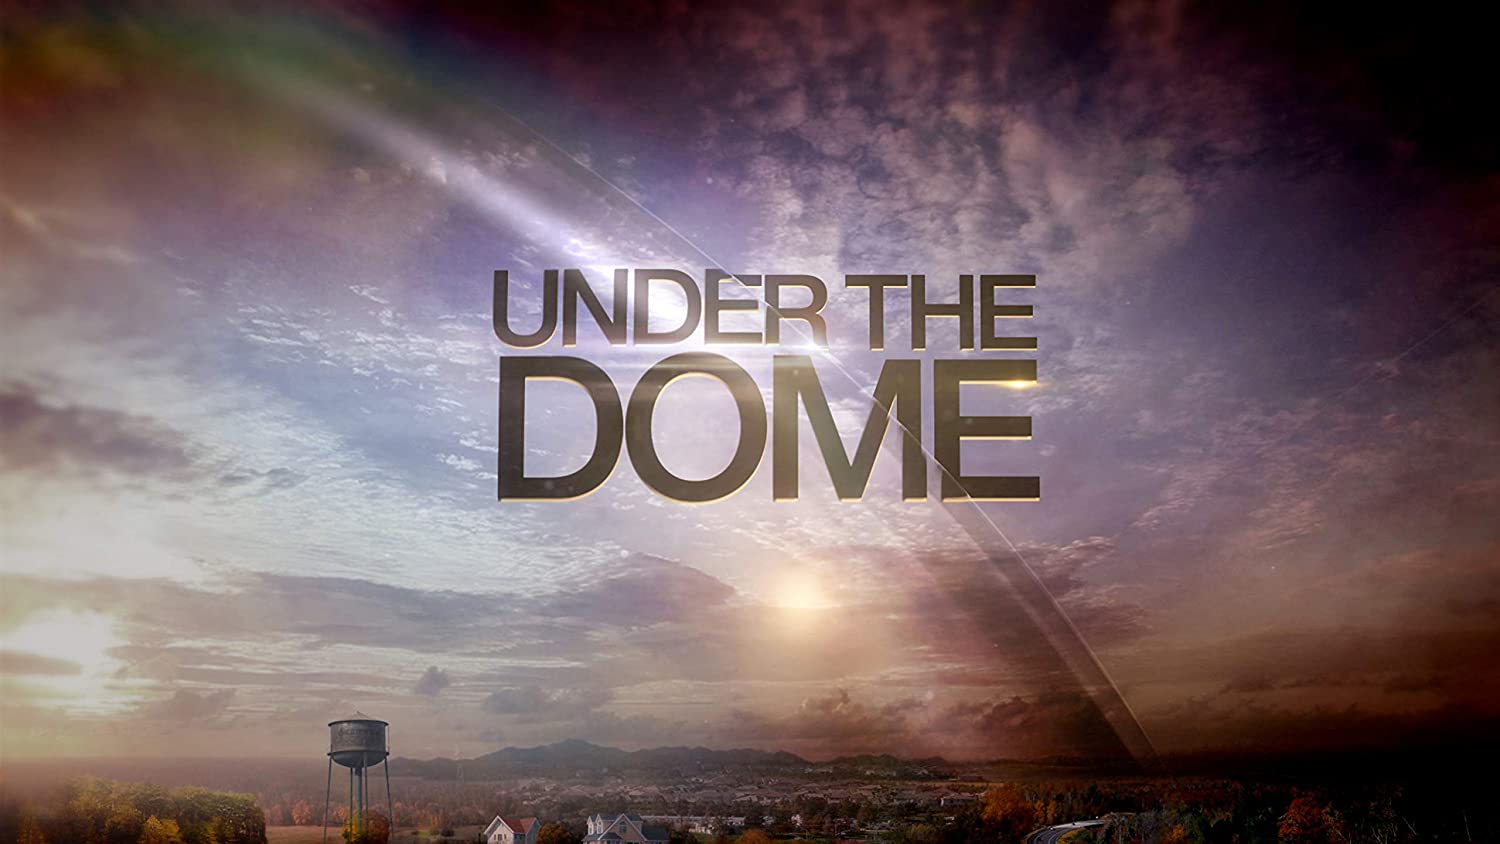 Under The Dome Movie Wall Poster Direct sale Limited time for free shipping of manufacturer Art Print